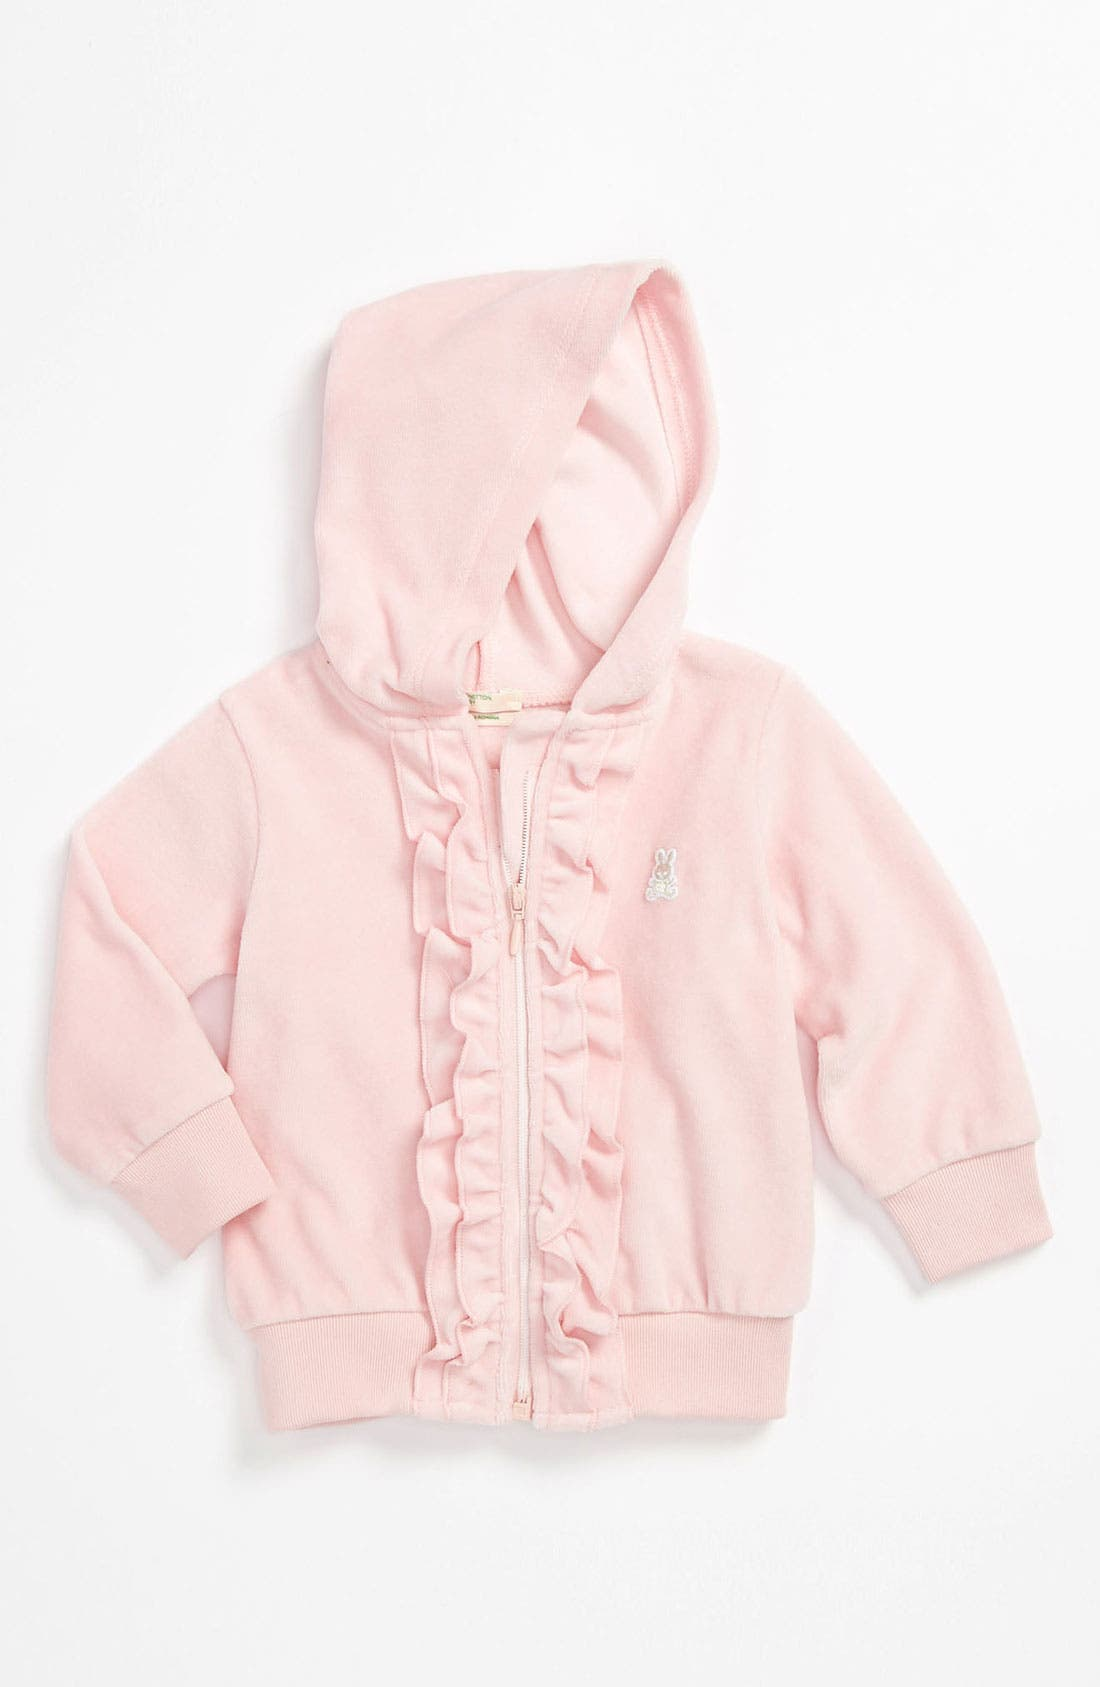 Alternate Image 1 Selected - United Colors of Benetton Kids Velour Hoodie (Baby)